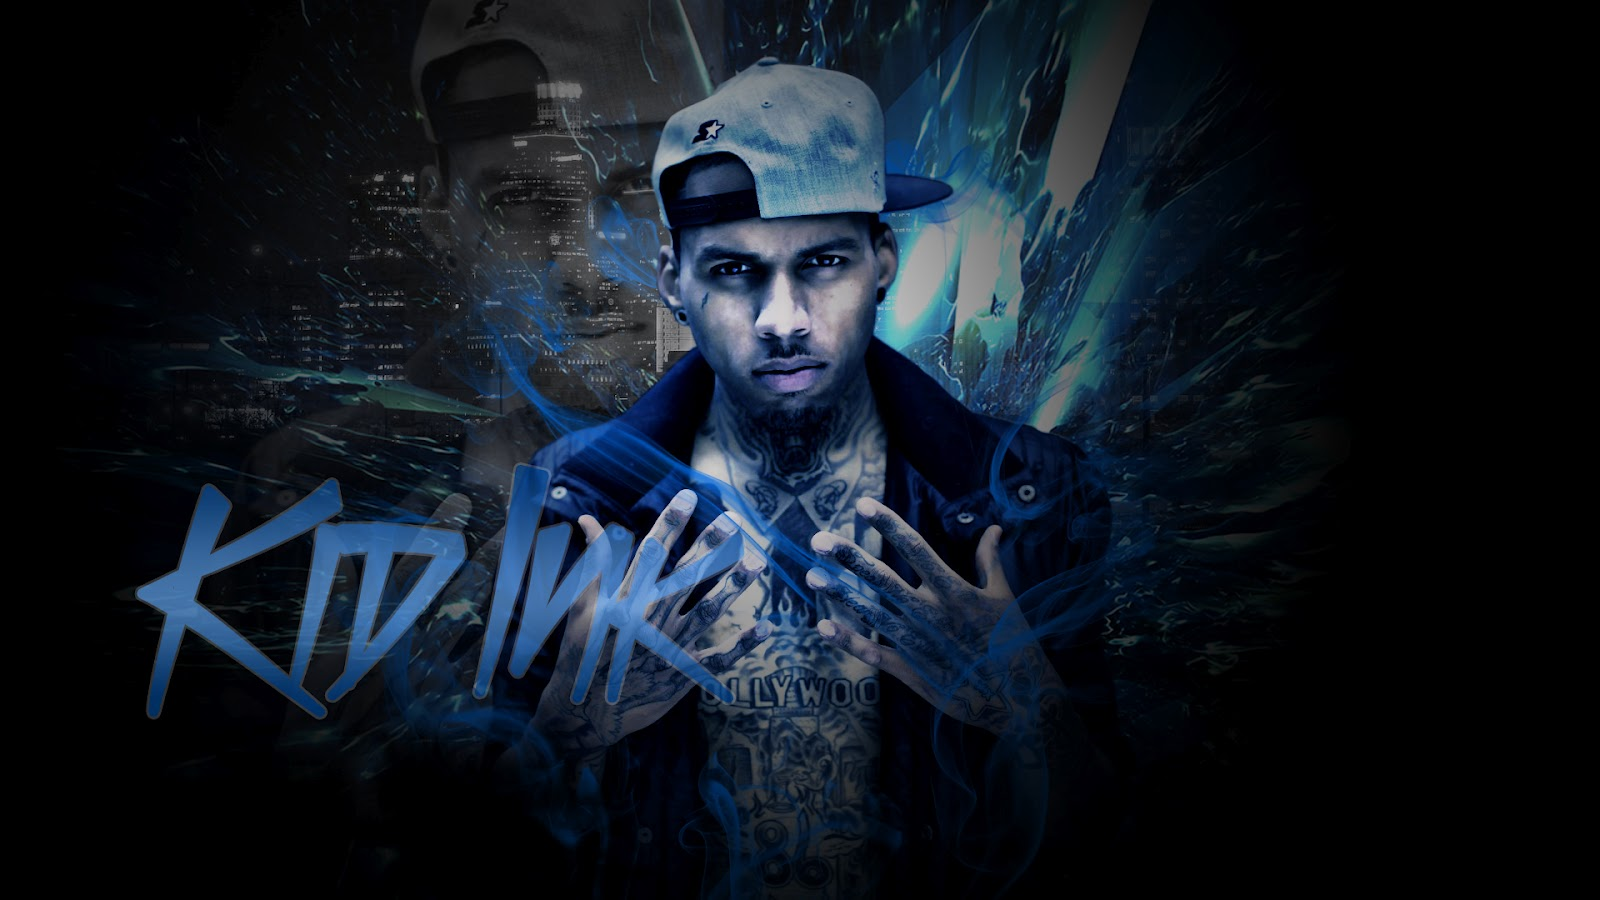 Gs Use Emoticons: Kid Ink